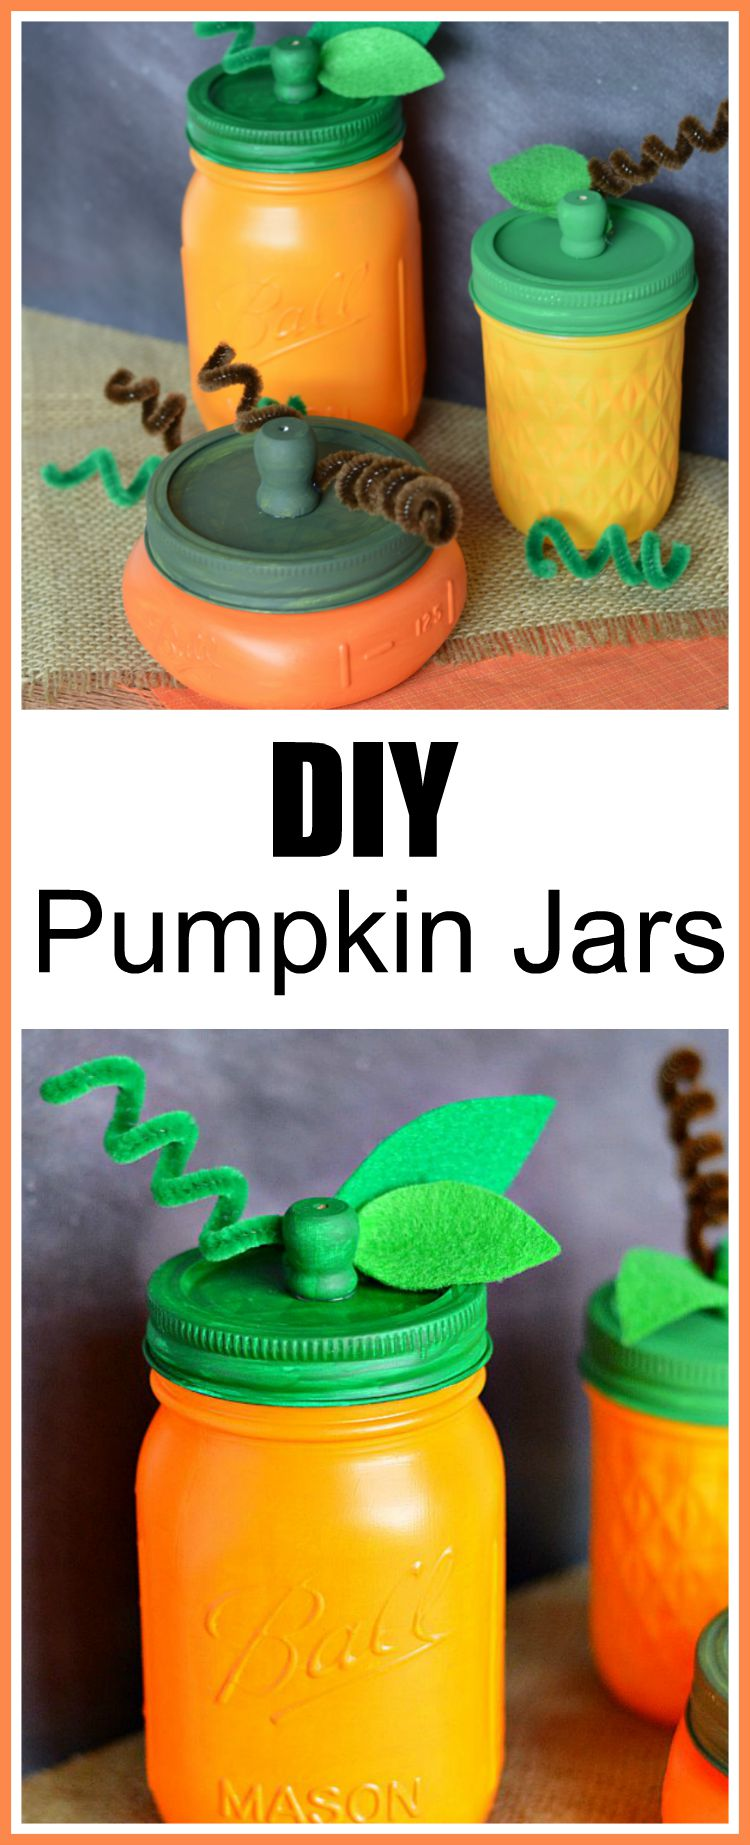 DIY Mason Jar Pumpkins